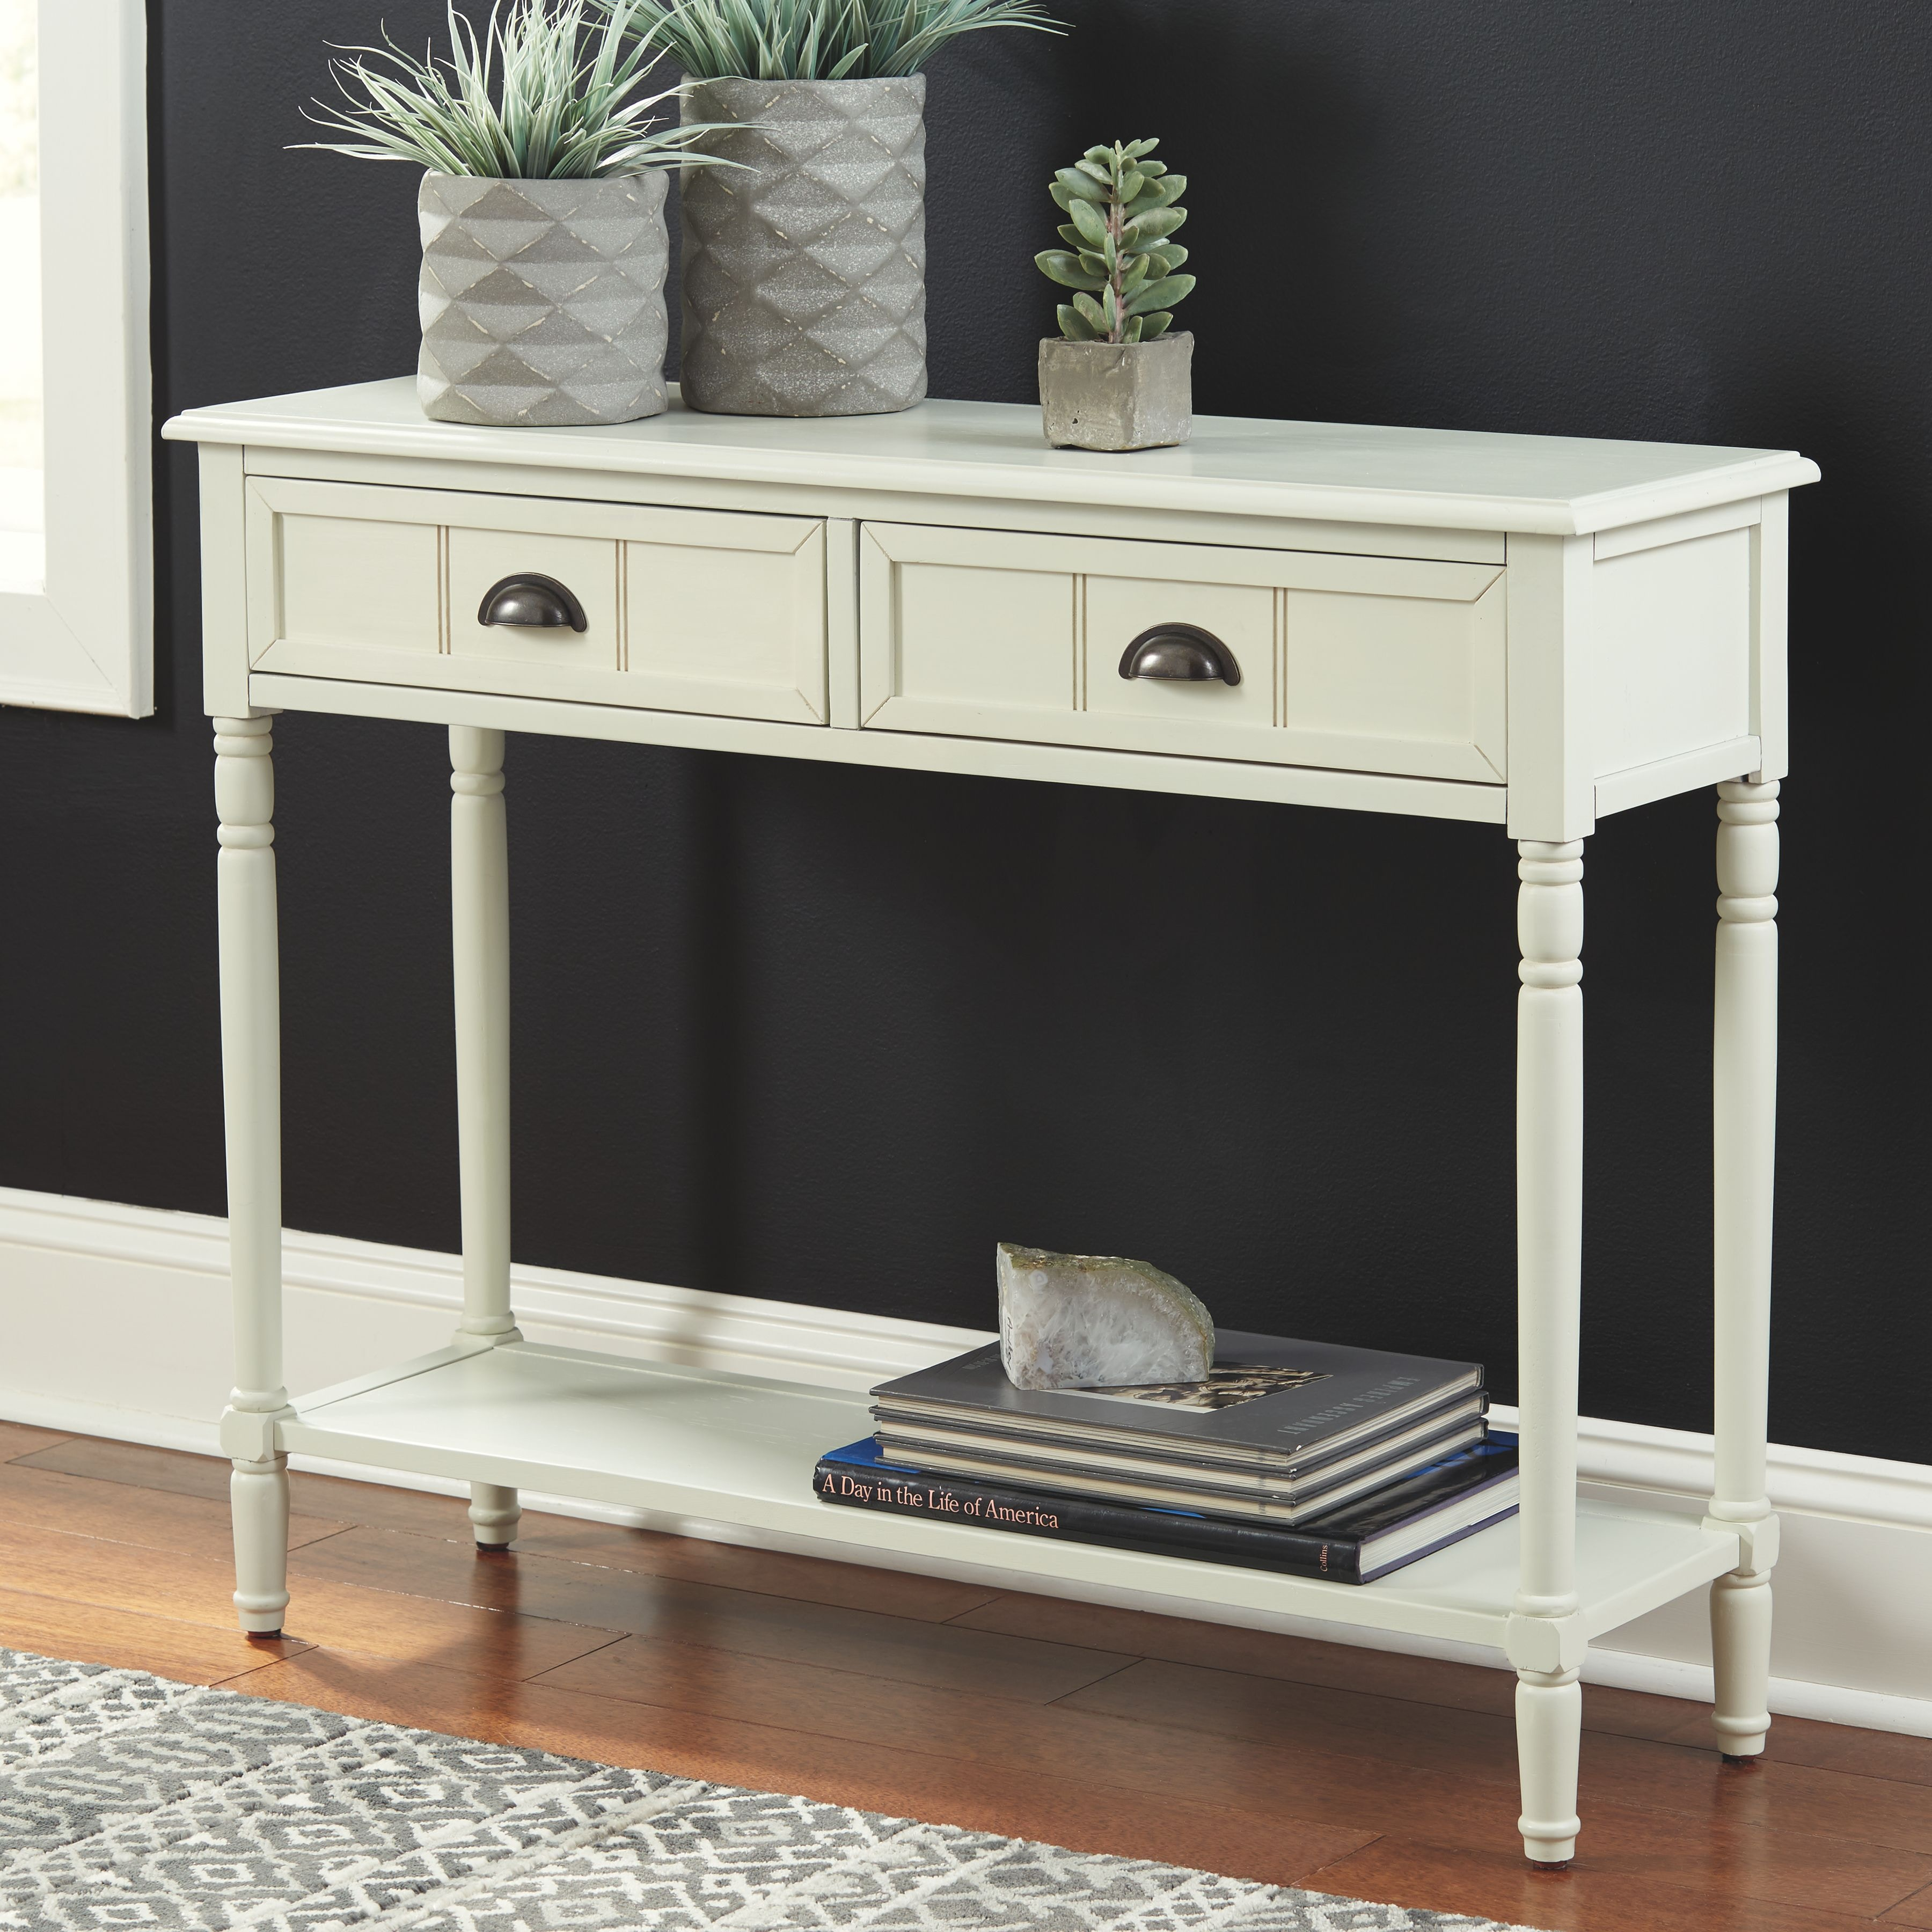 Signature Design By Ashley Living Room Console Sofa Table A4000178